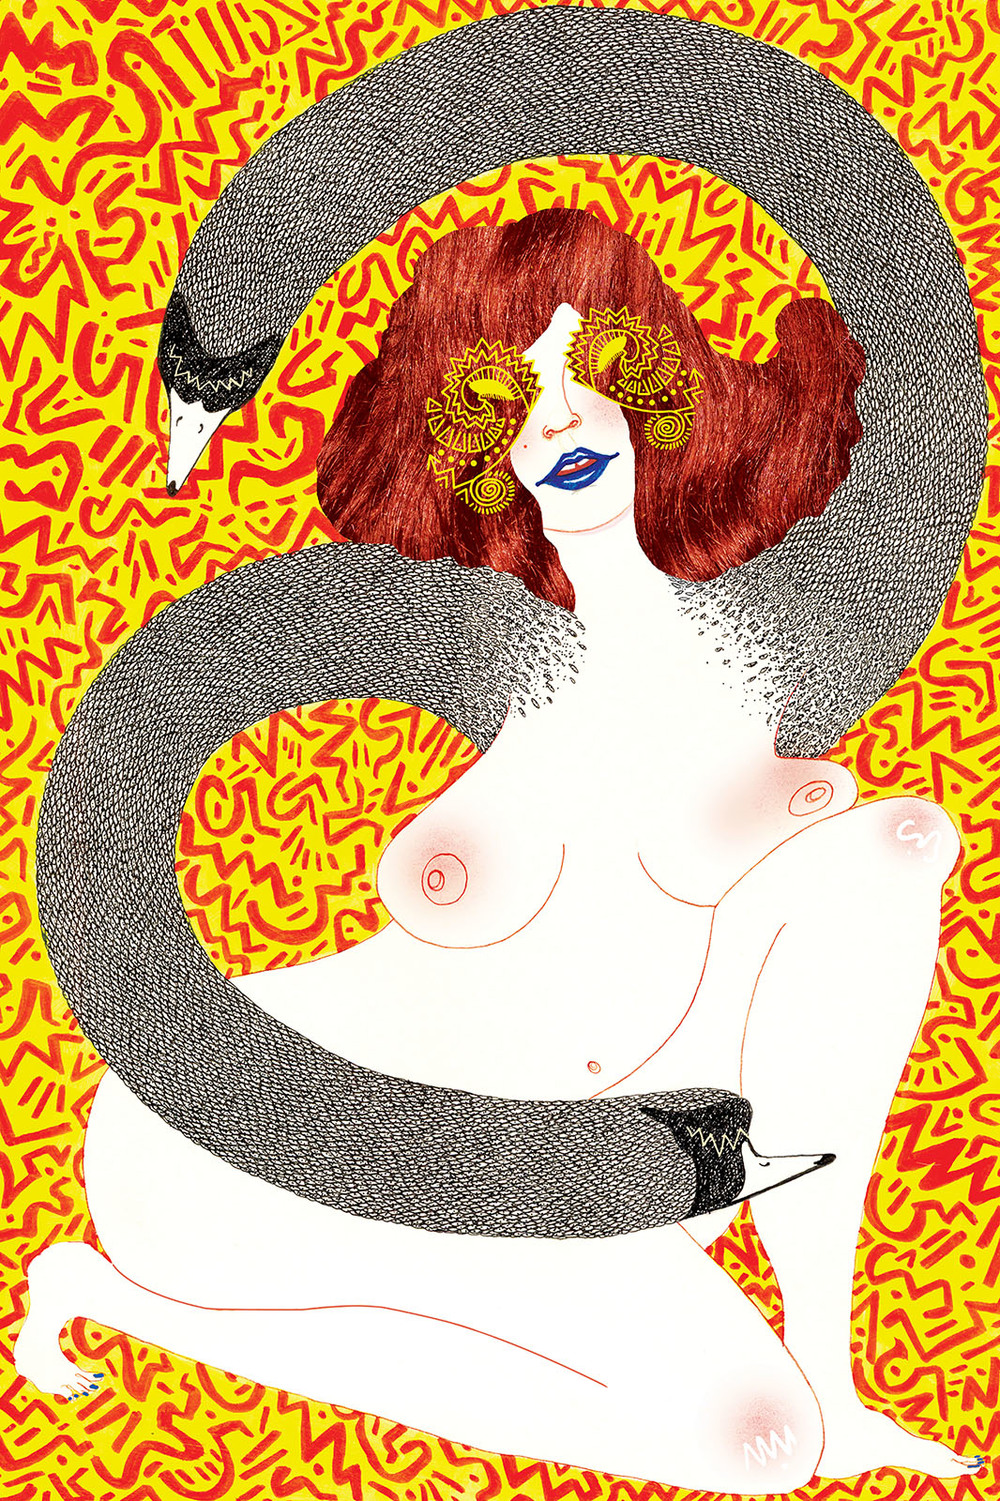 Tantalizing Temptation  ; Graphite, blush, ink, acrylic and digital 2013  SOLD